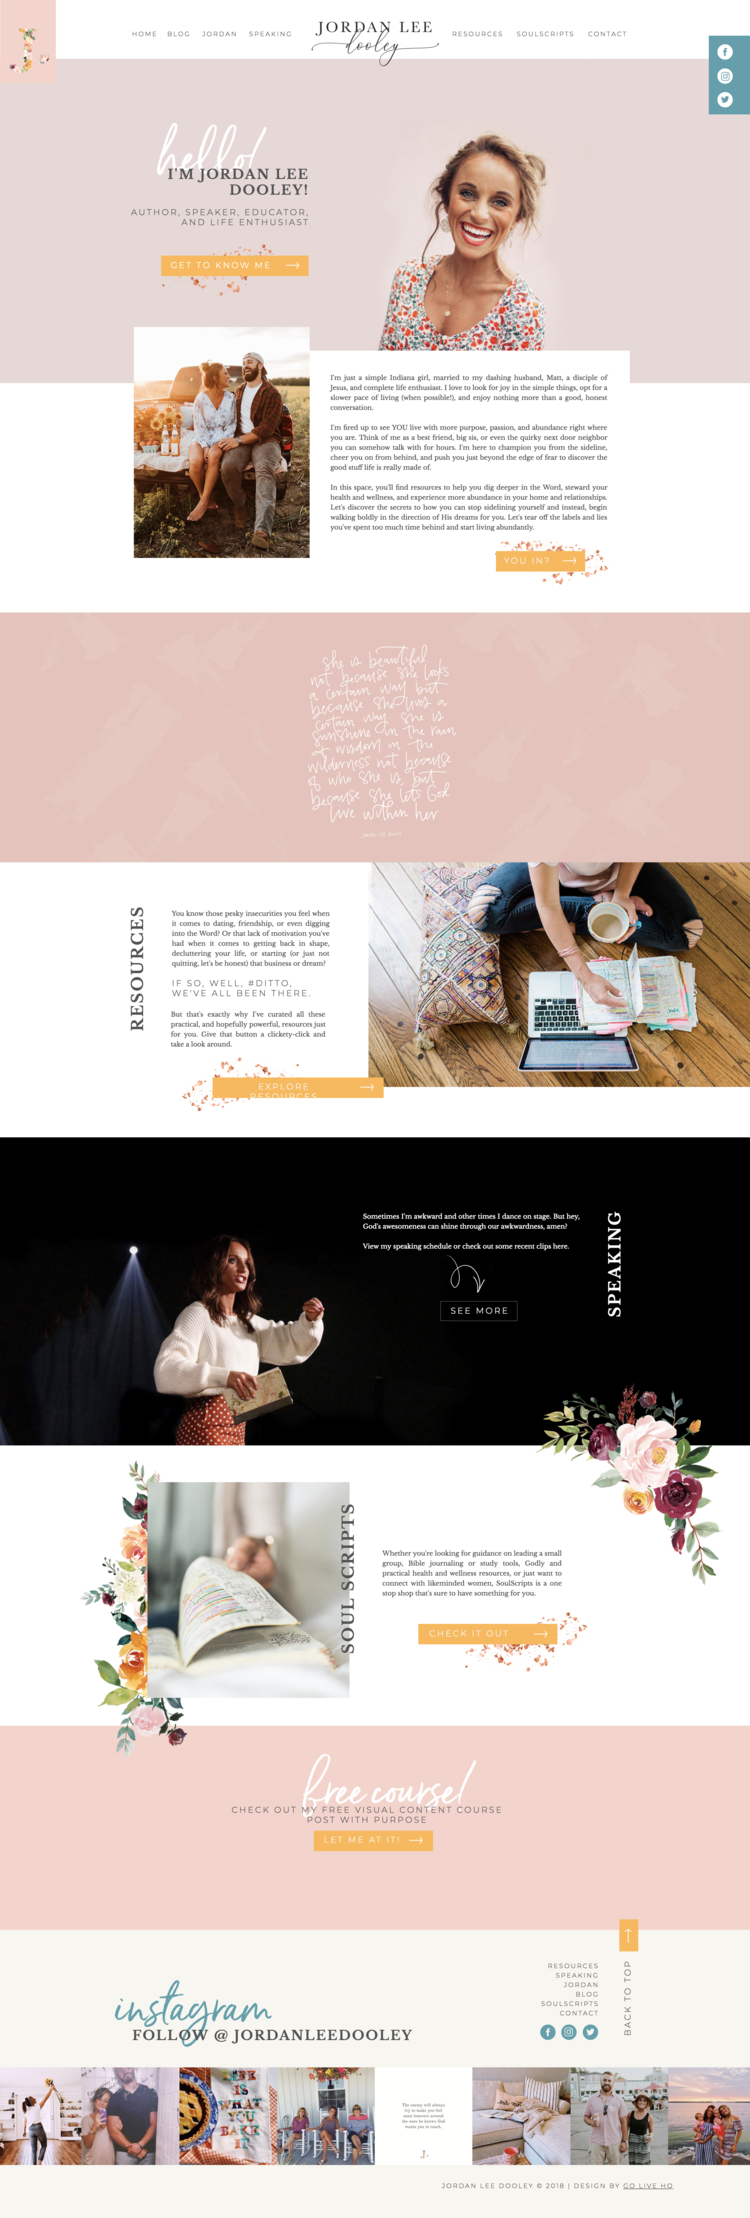 Creative+and+Colorful+Website+Design+for+Christian+Speaker+_+Design+by+Go+Live+HQ.png